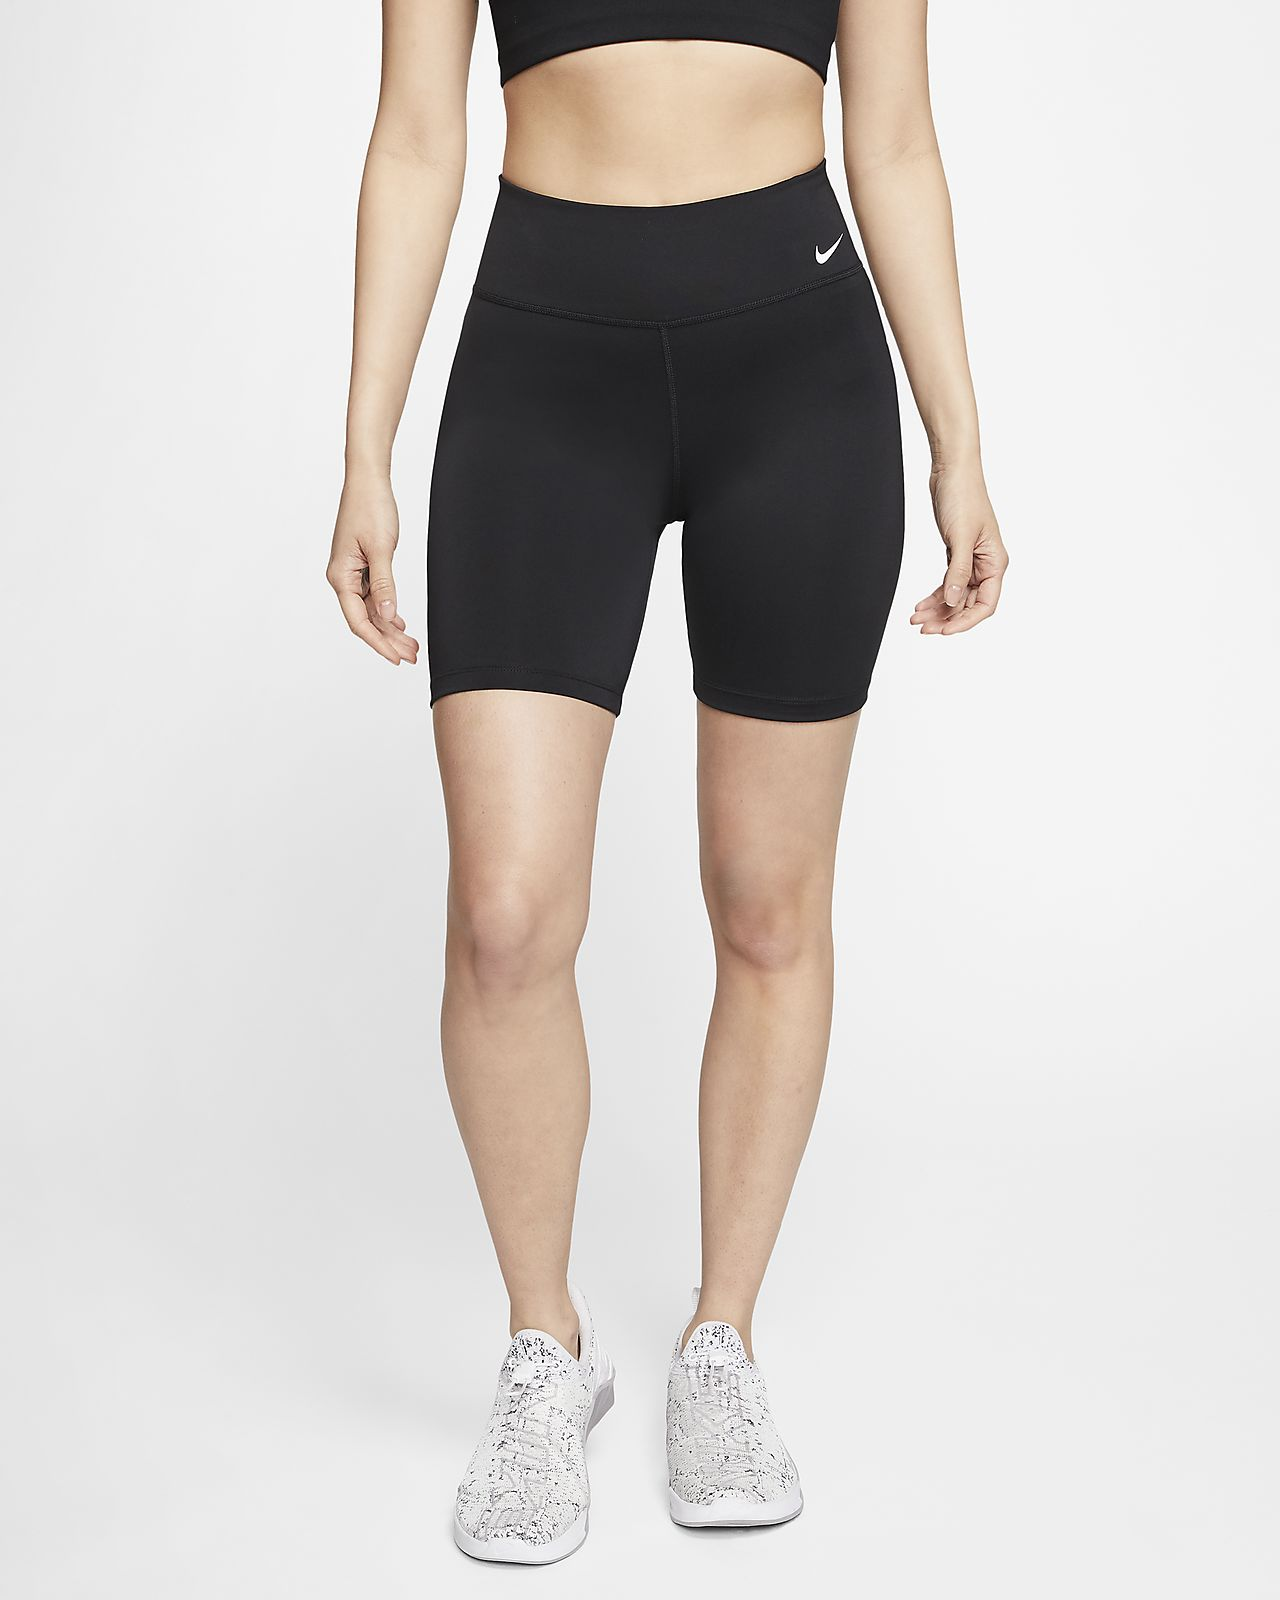 Nike One Women's Shorts